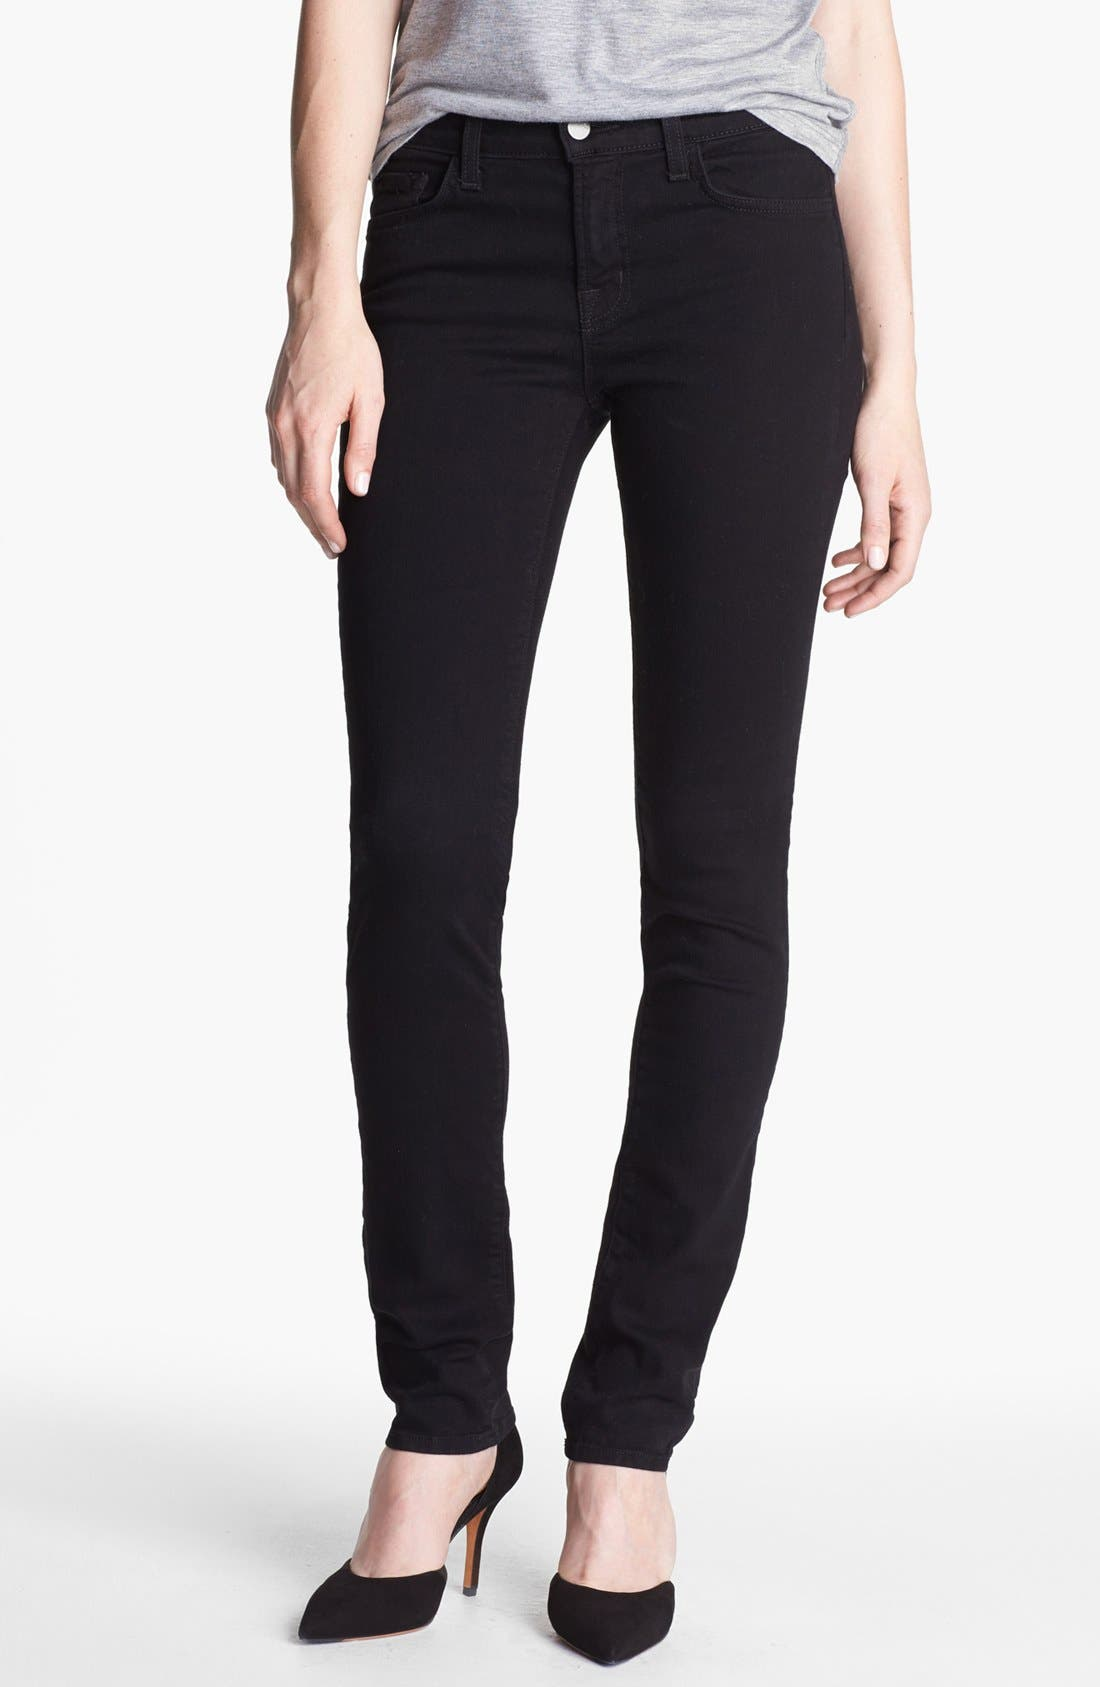 Alternate Image 1 Selected - J Brand '8112' Mid-Rise Rail Jeans (Shadow)